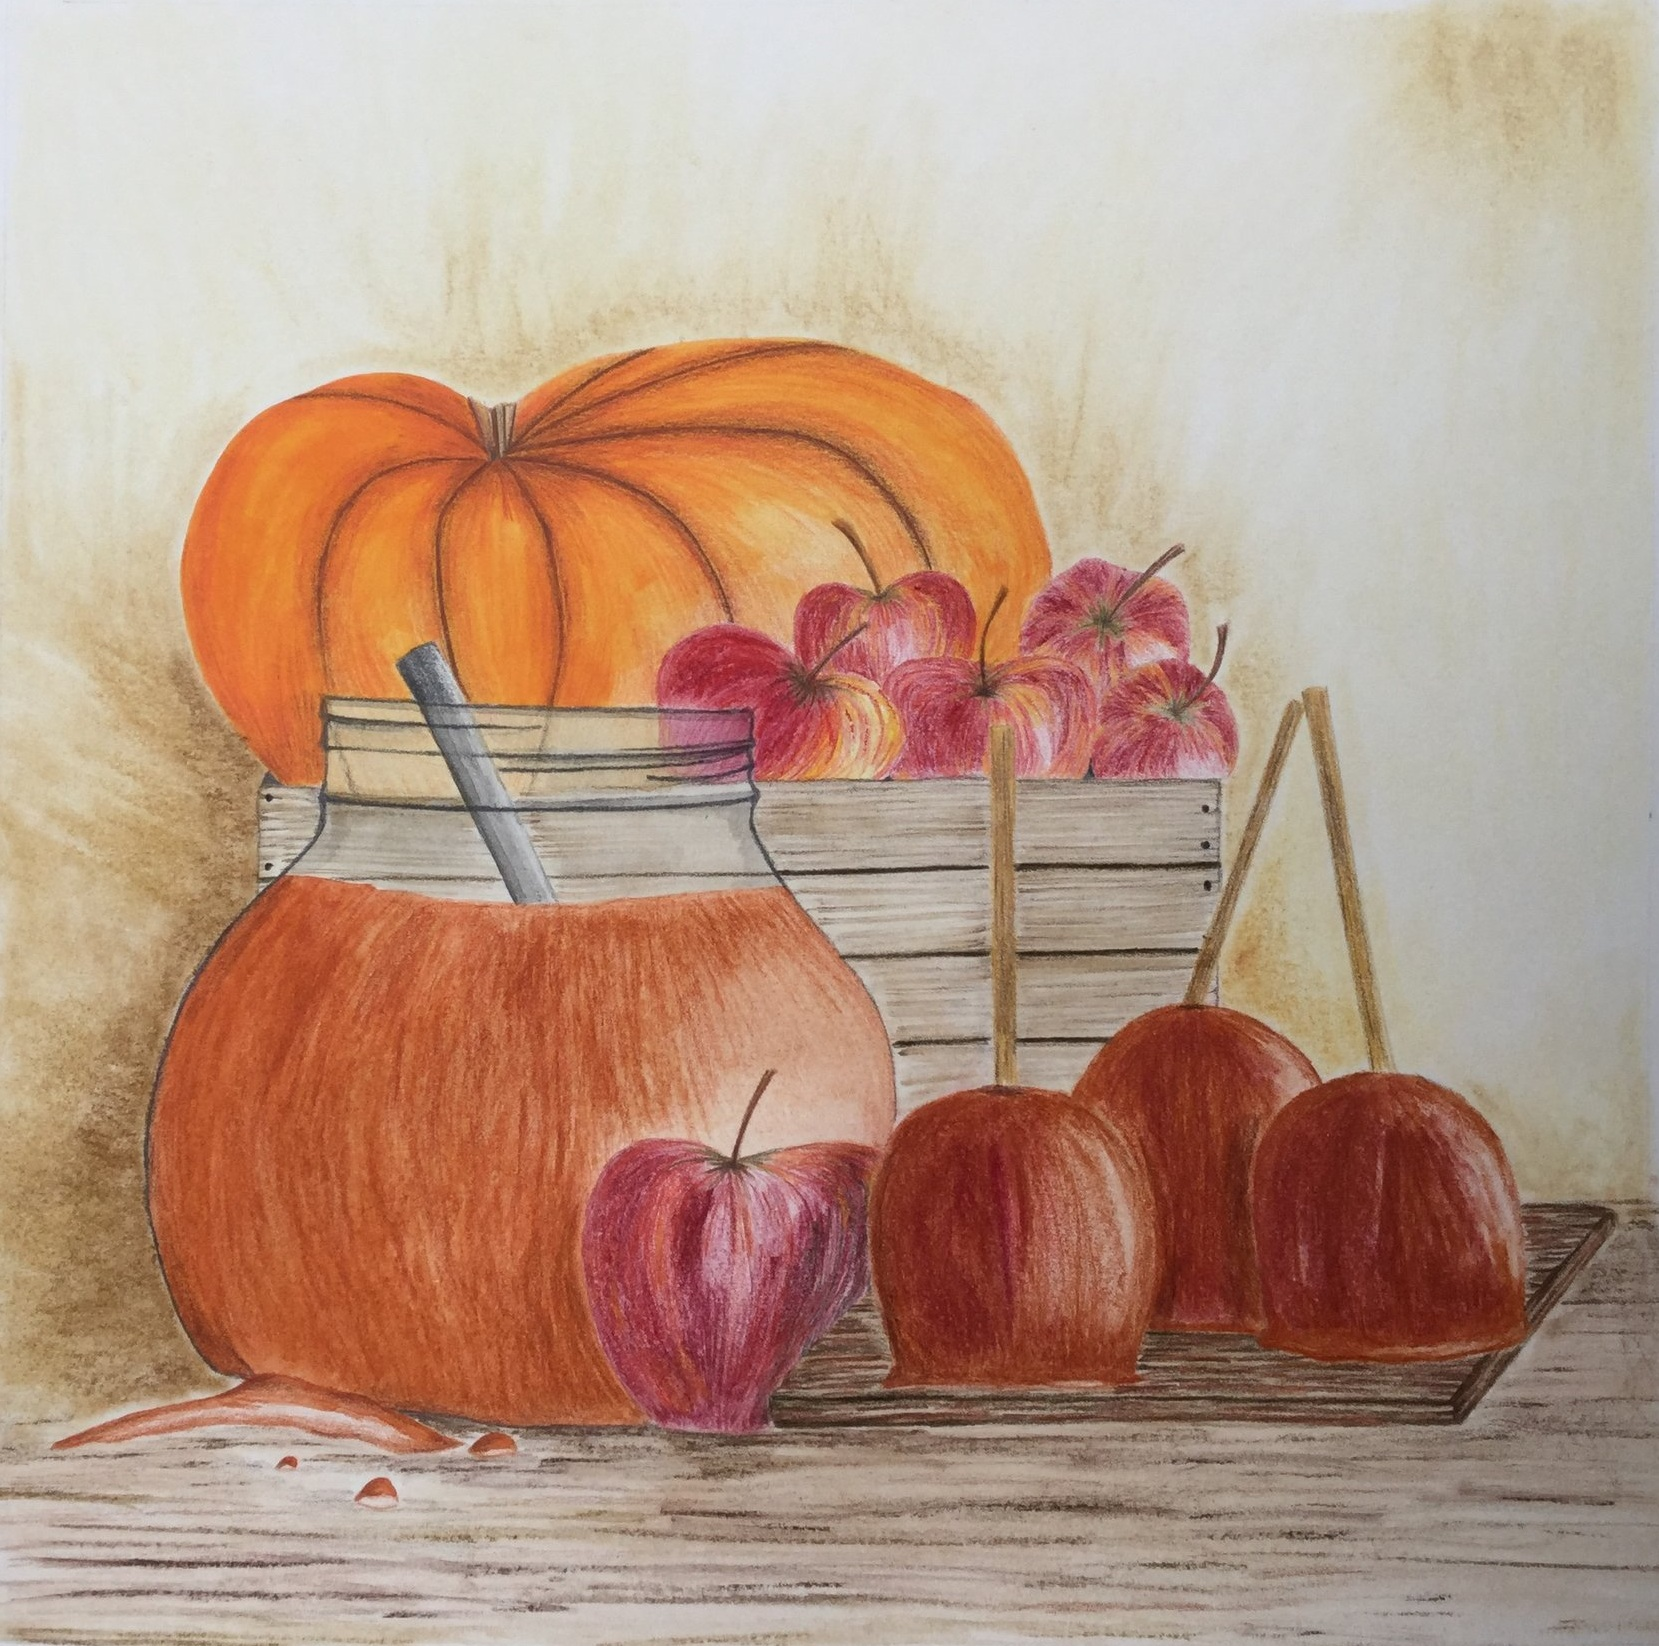 Autumn illustration by Briony Dixon